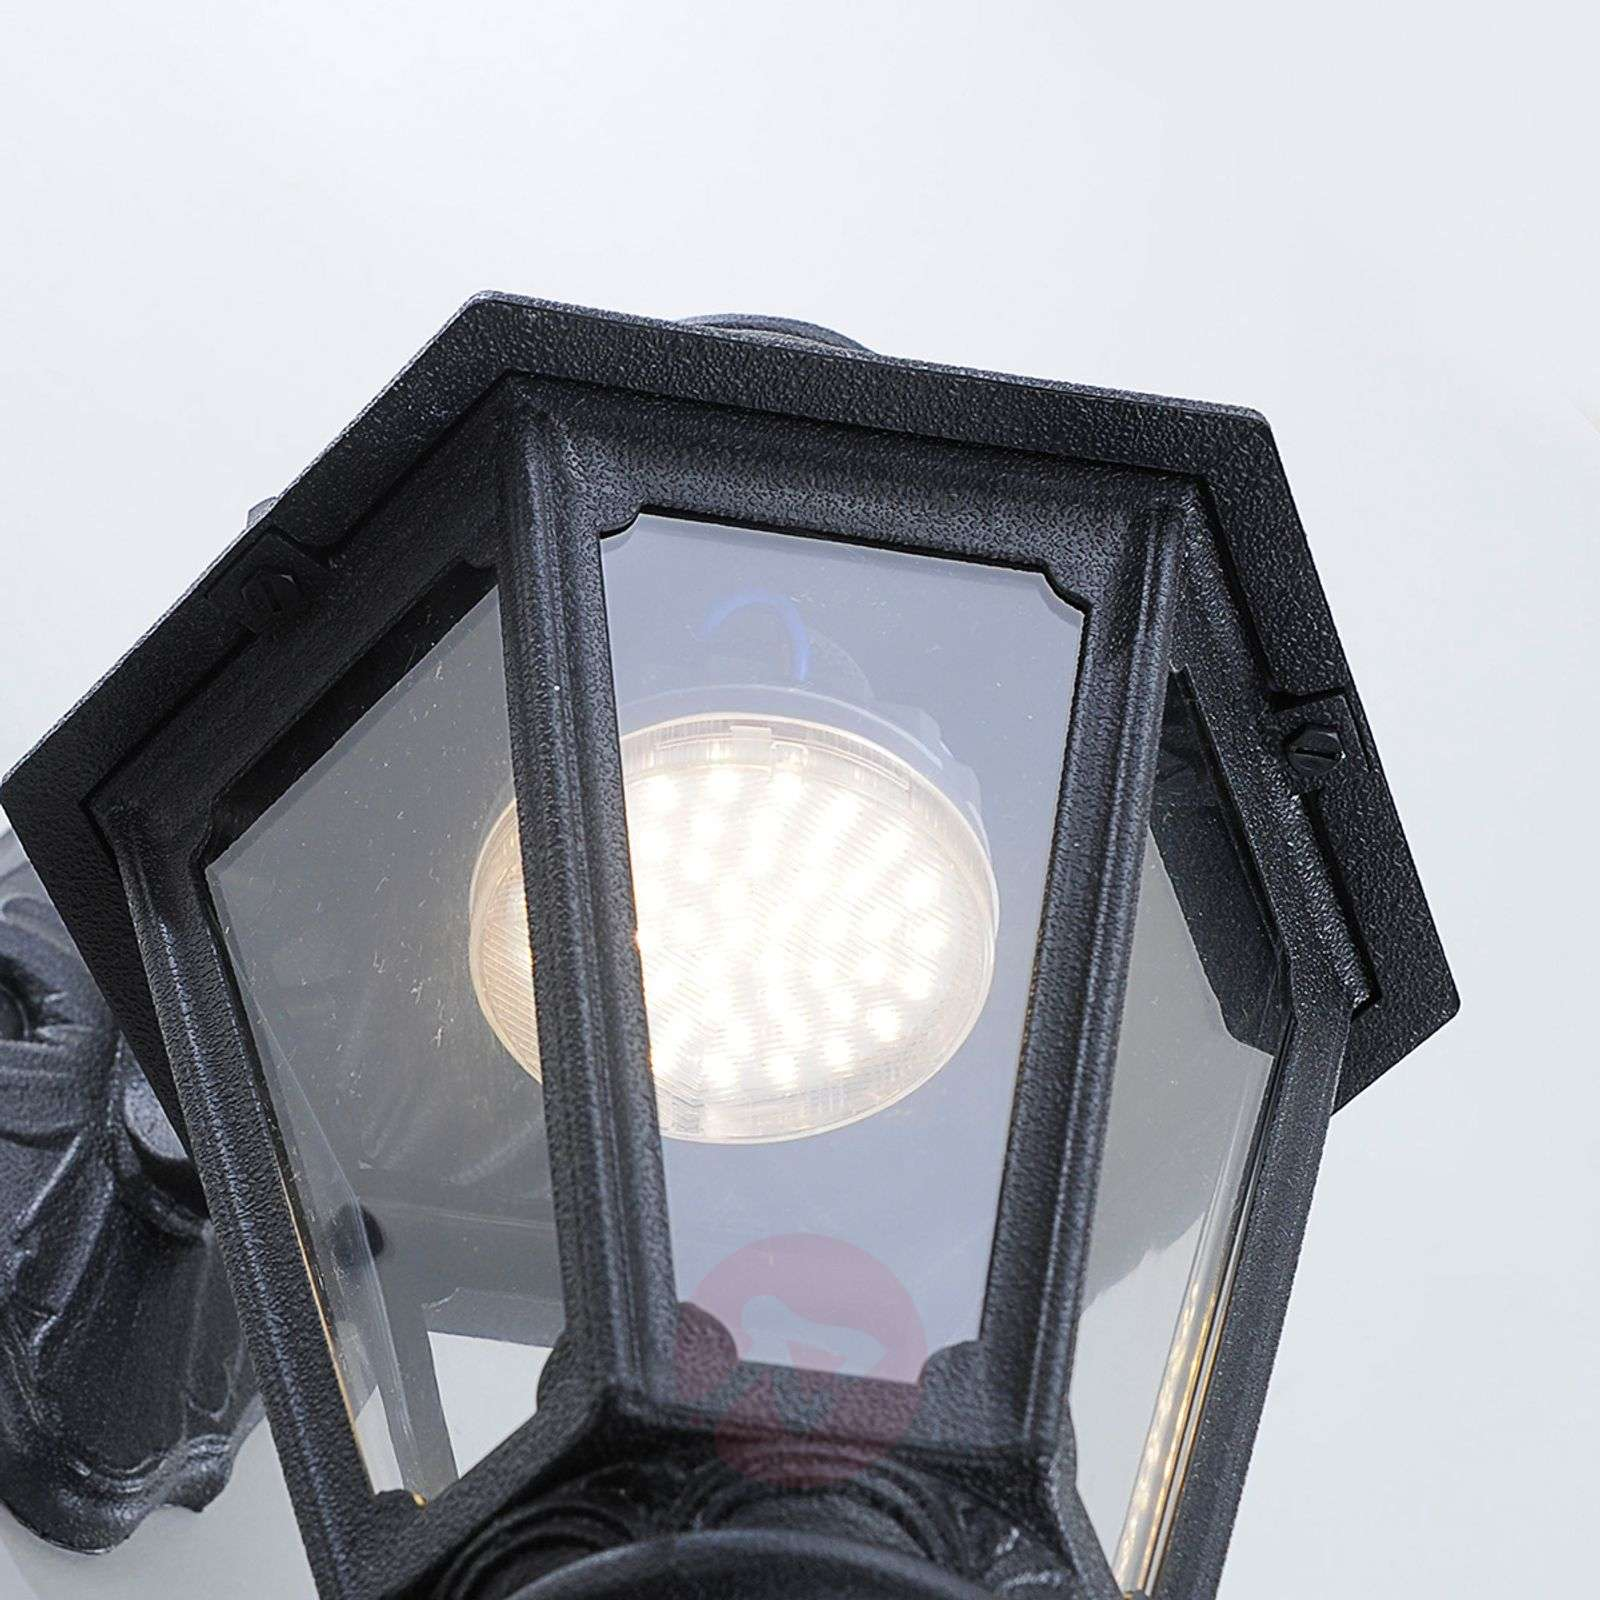 LED outdoor wall lamp Bisso Anna black downwards-3538028-03